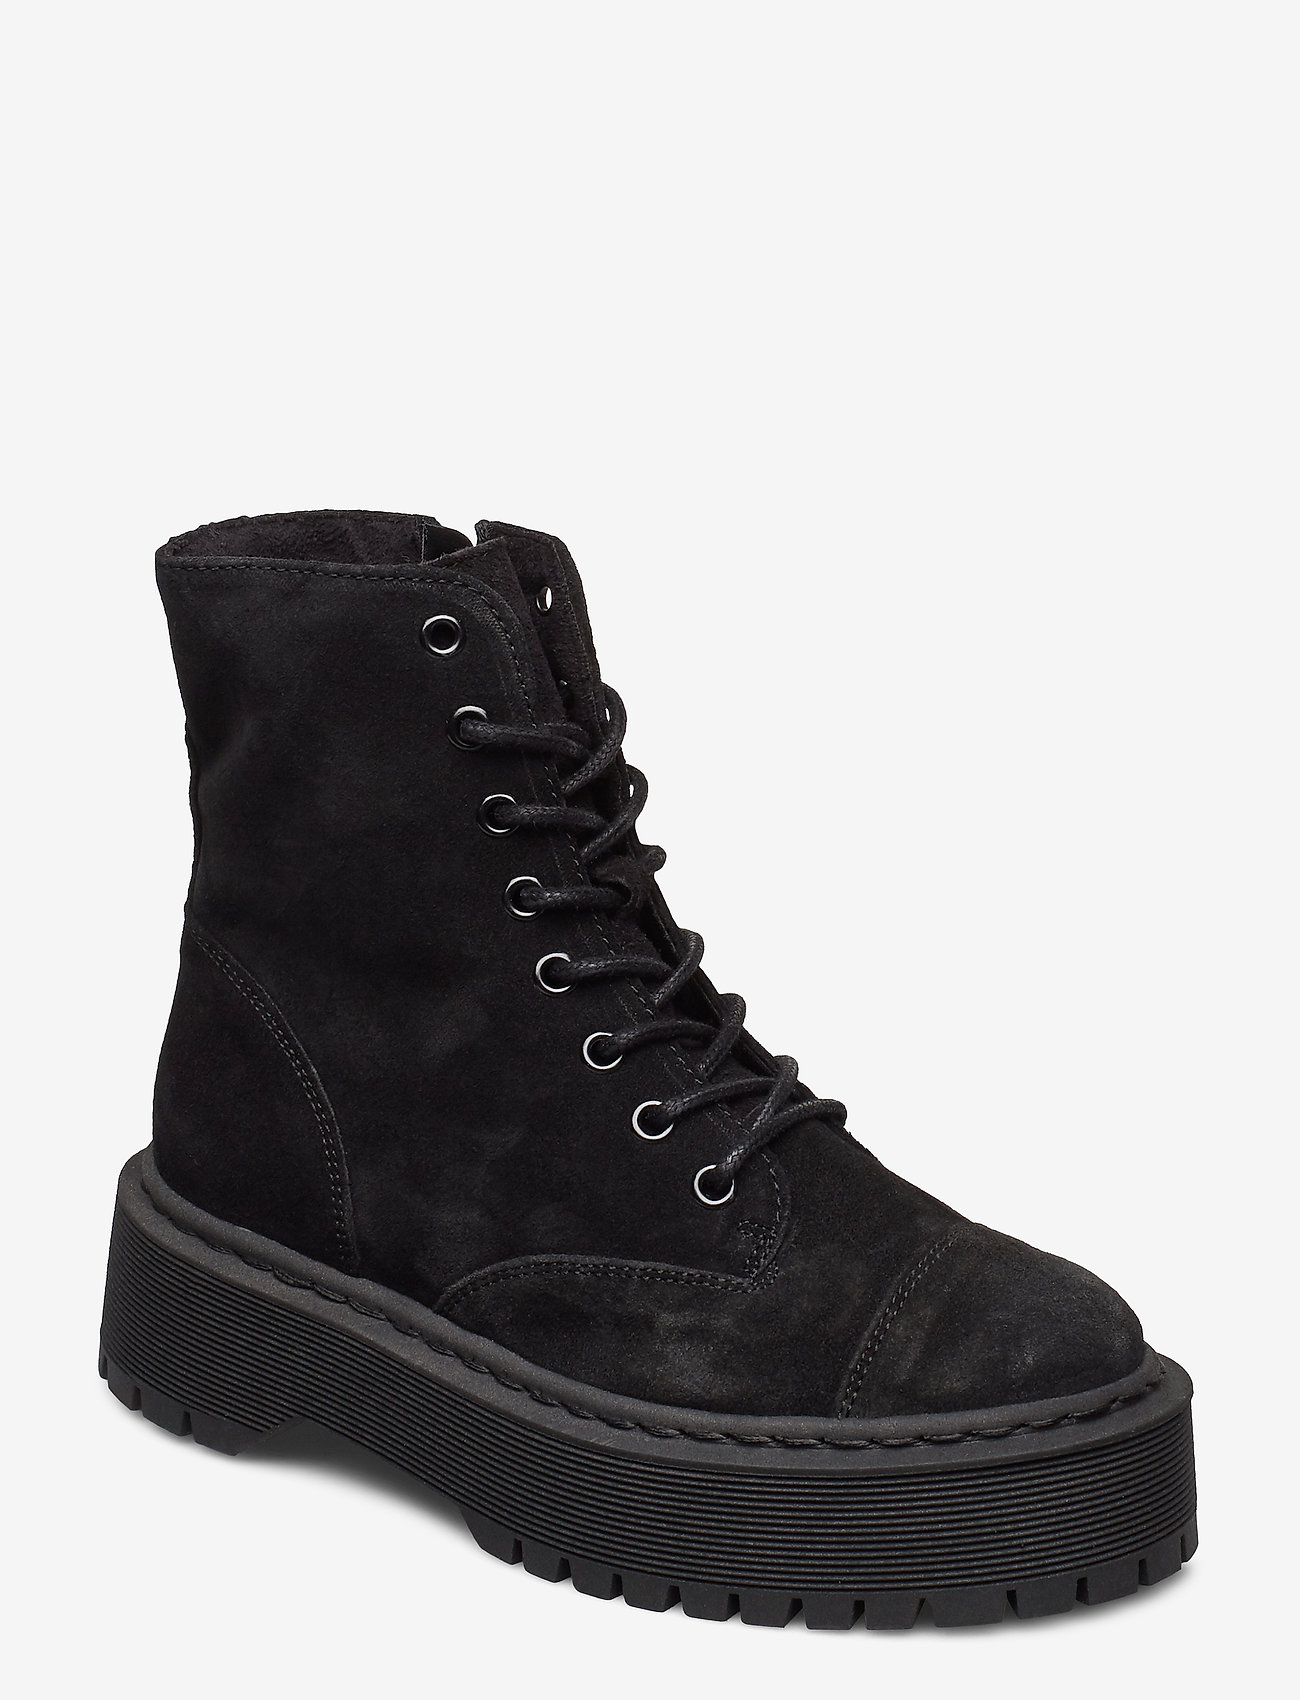 Vero Moda - VMPATH LEATHER BOOT - niski obcas - black - 0